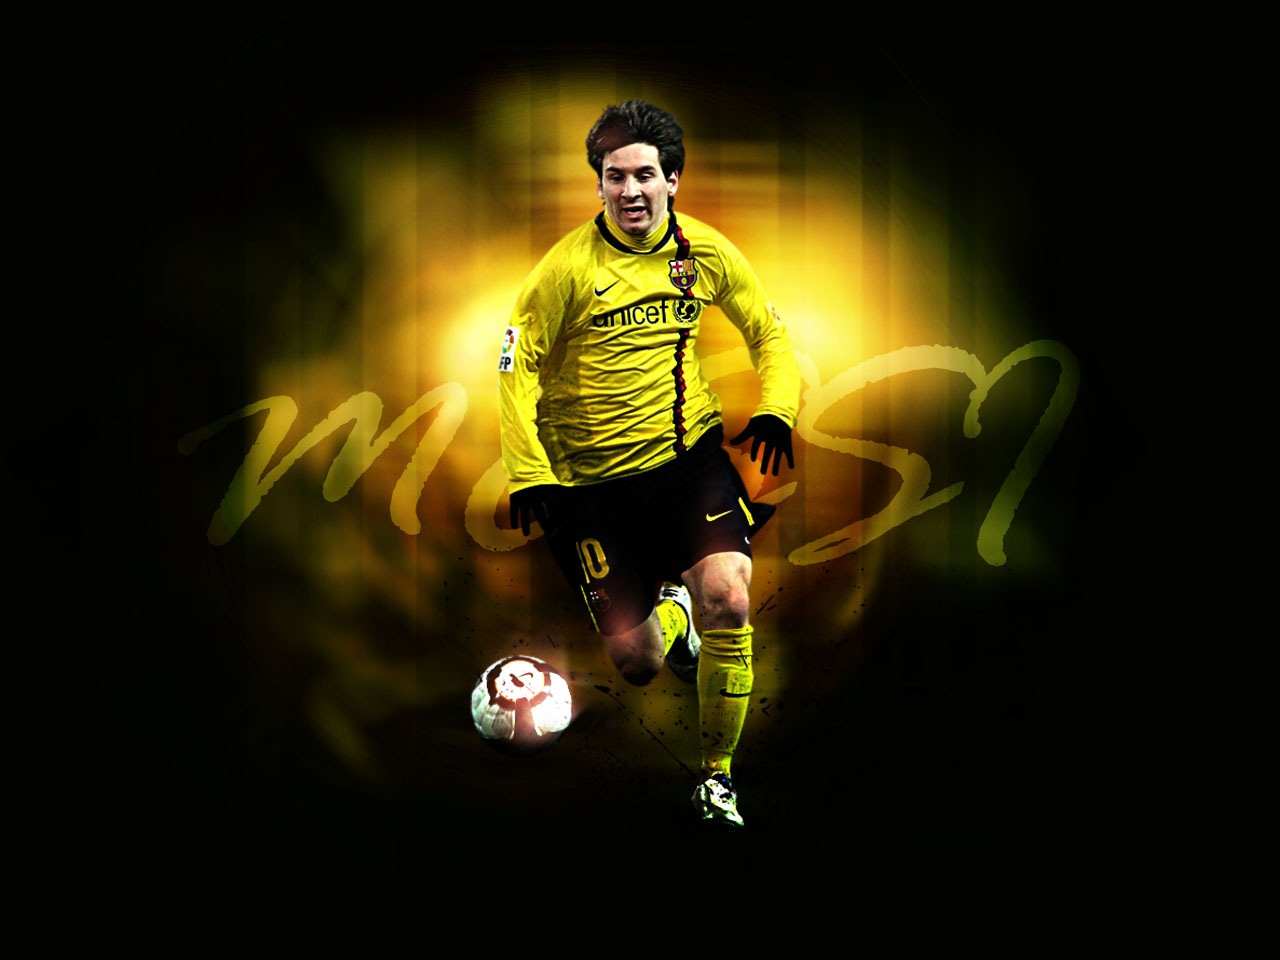 Football Super Star Player: Lionel Messi New HD Wallpapers 2013